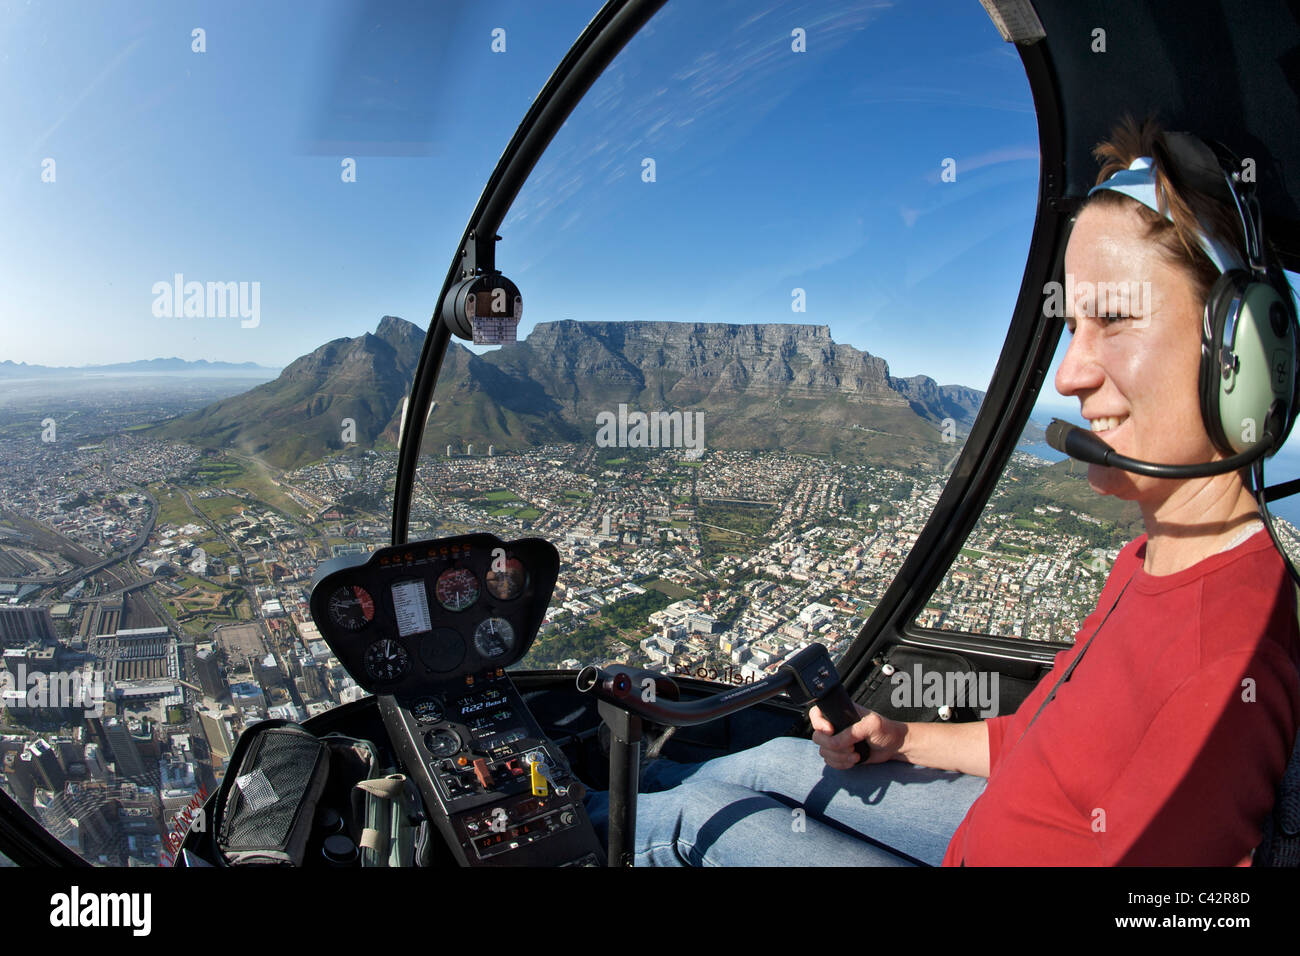 Young woman at the controls of a Robinson 22 helicopter flying over the city of Cape Town, South Africa. - Stock Image